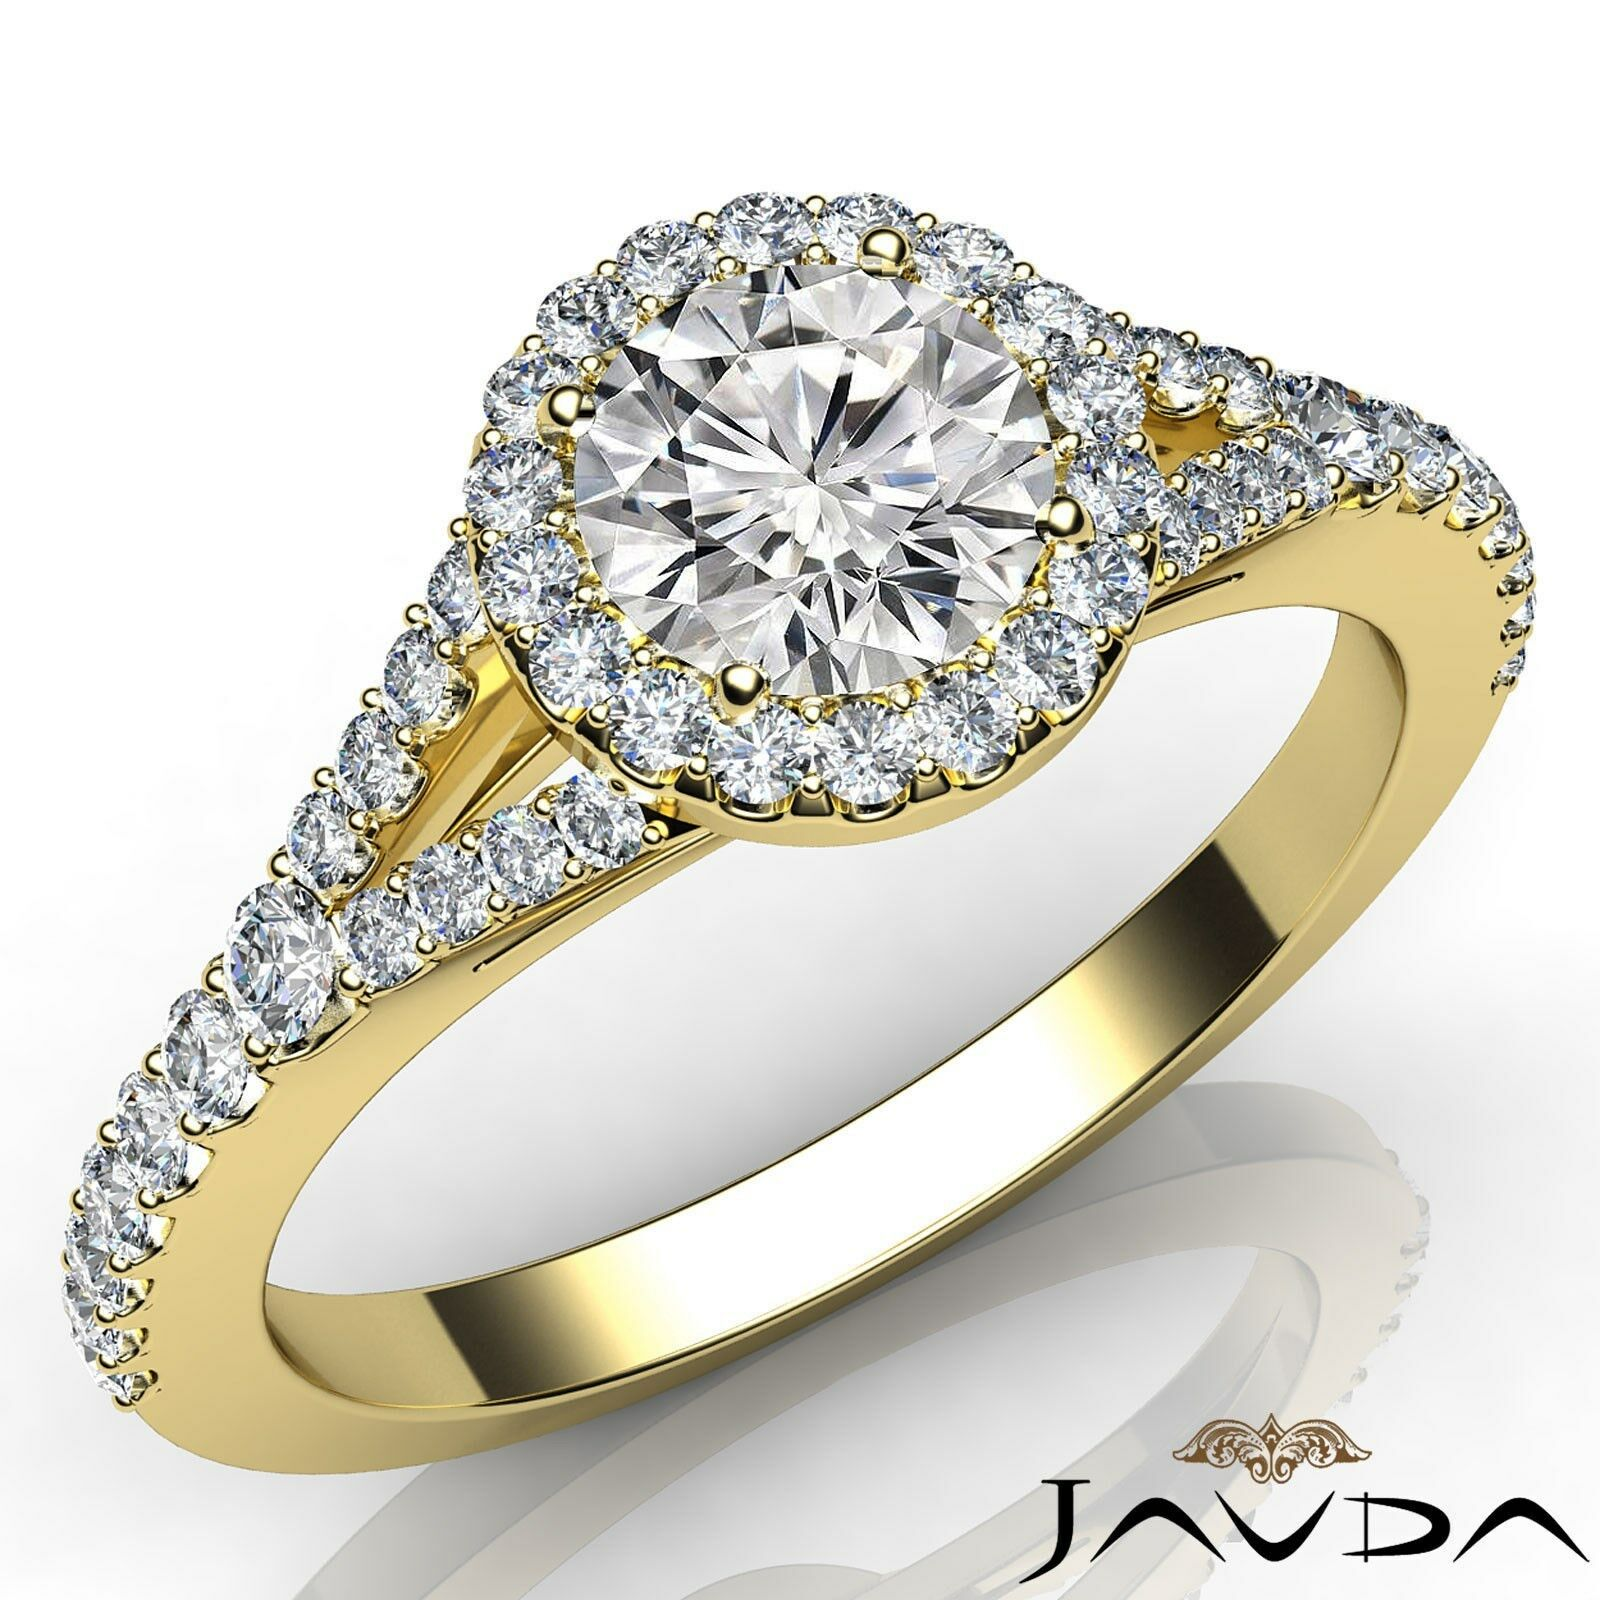 French U Pave Split Shank Halo Round Diamond Engagement Ring GIA E Color VS2 1Ct